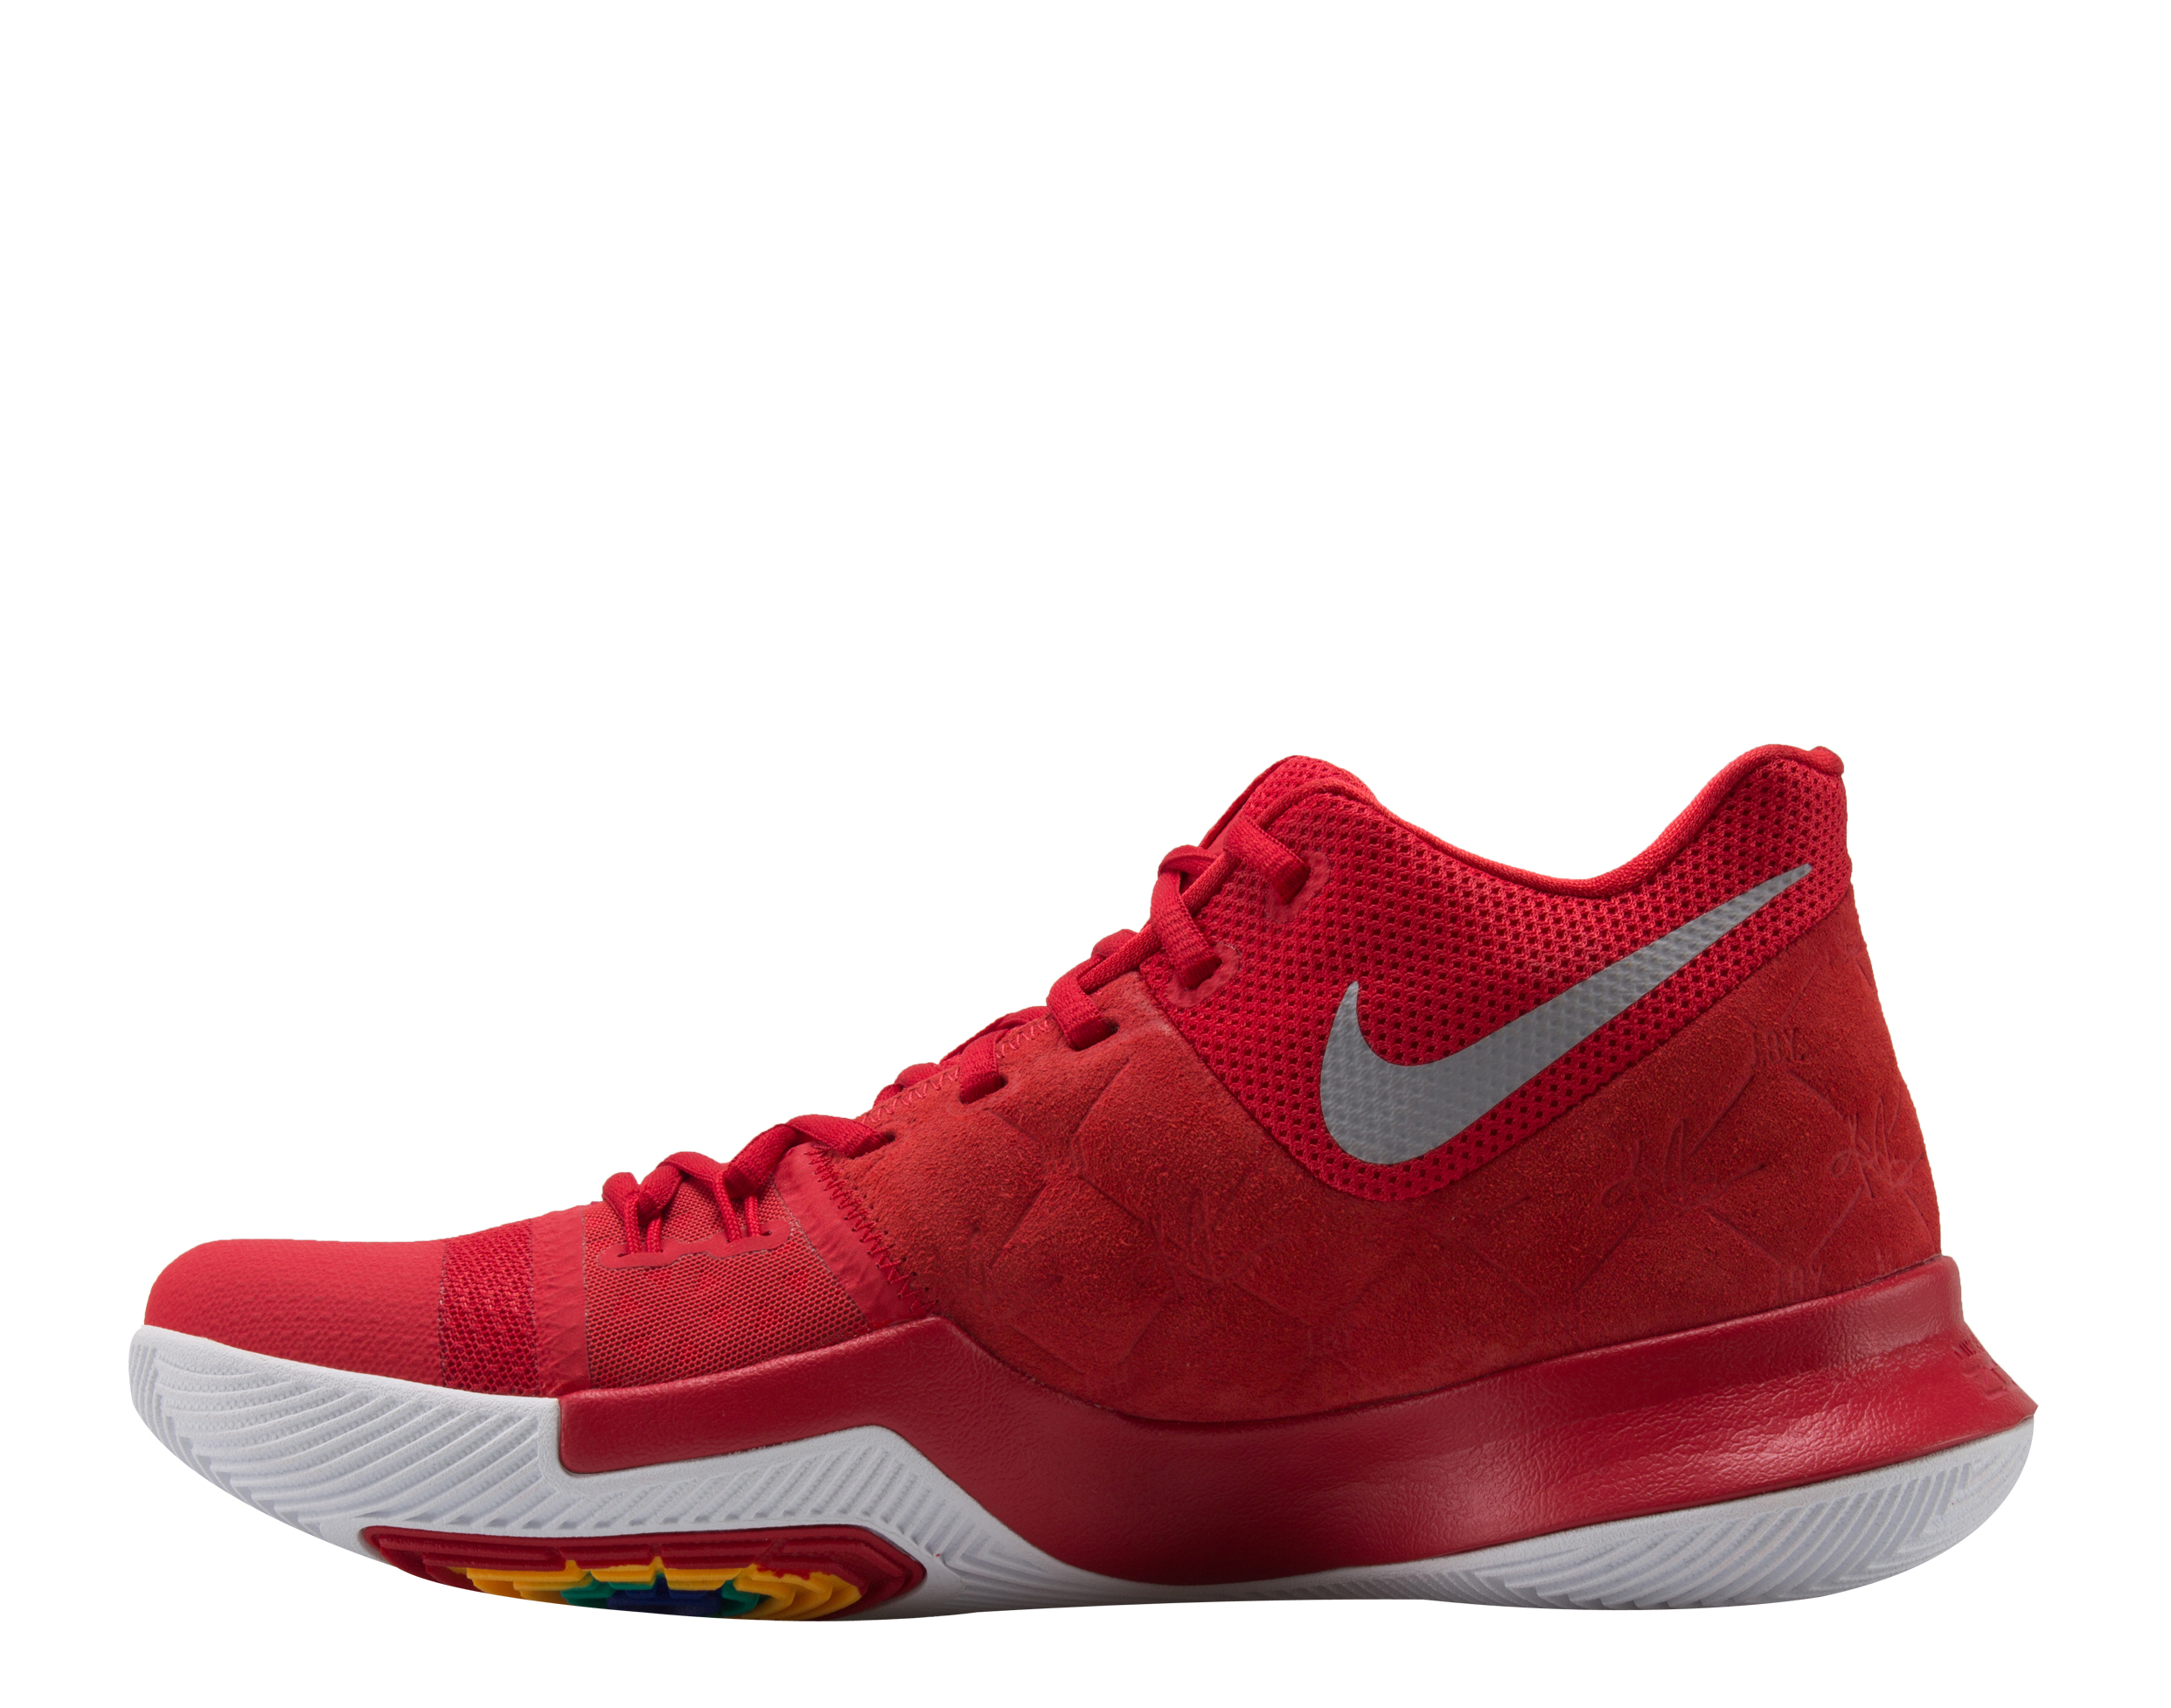 Nike Kyrie 3 University Red/Yellow Men's Basketball Shoes 852395-601